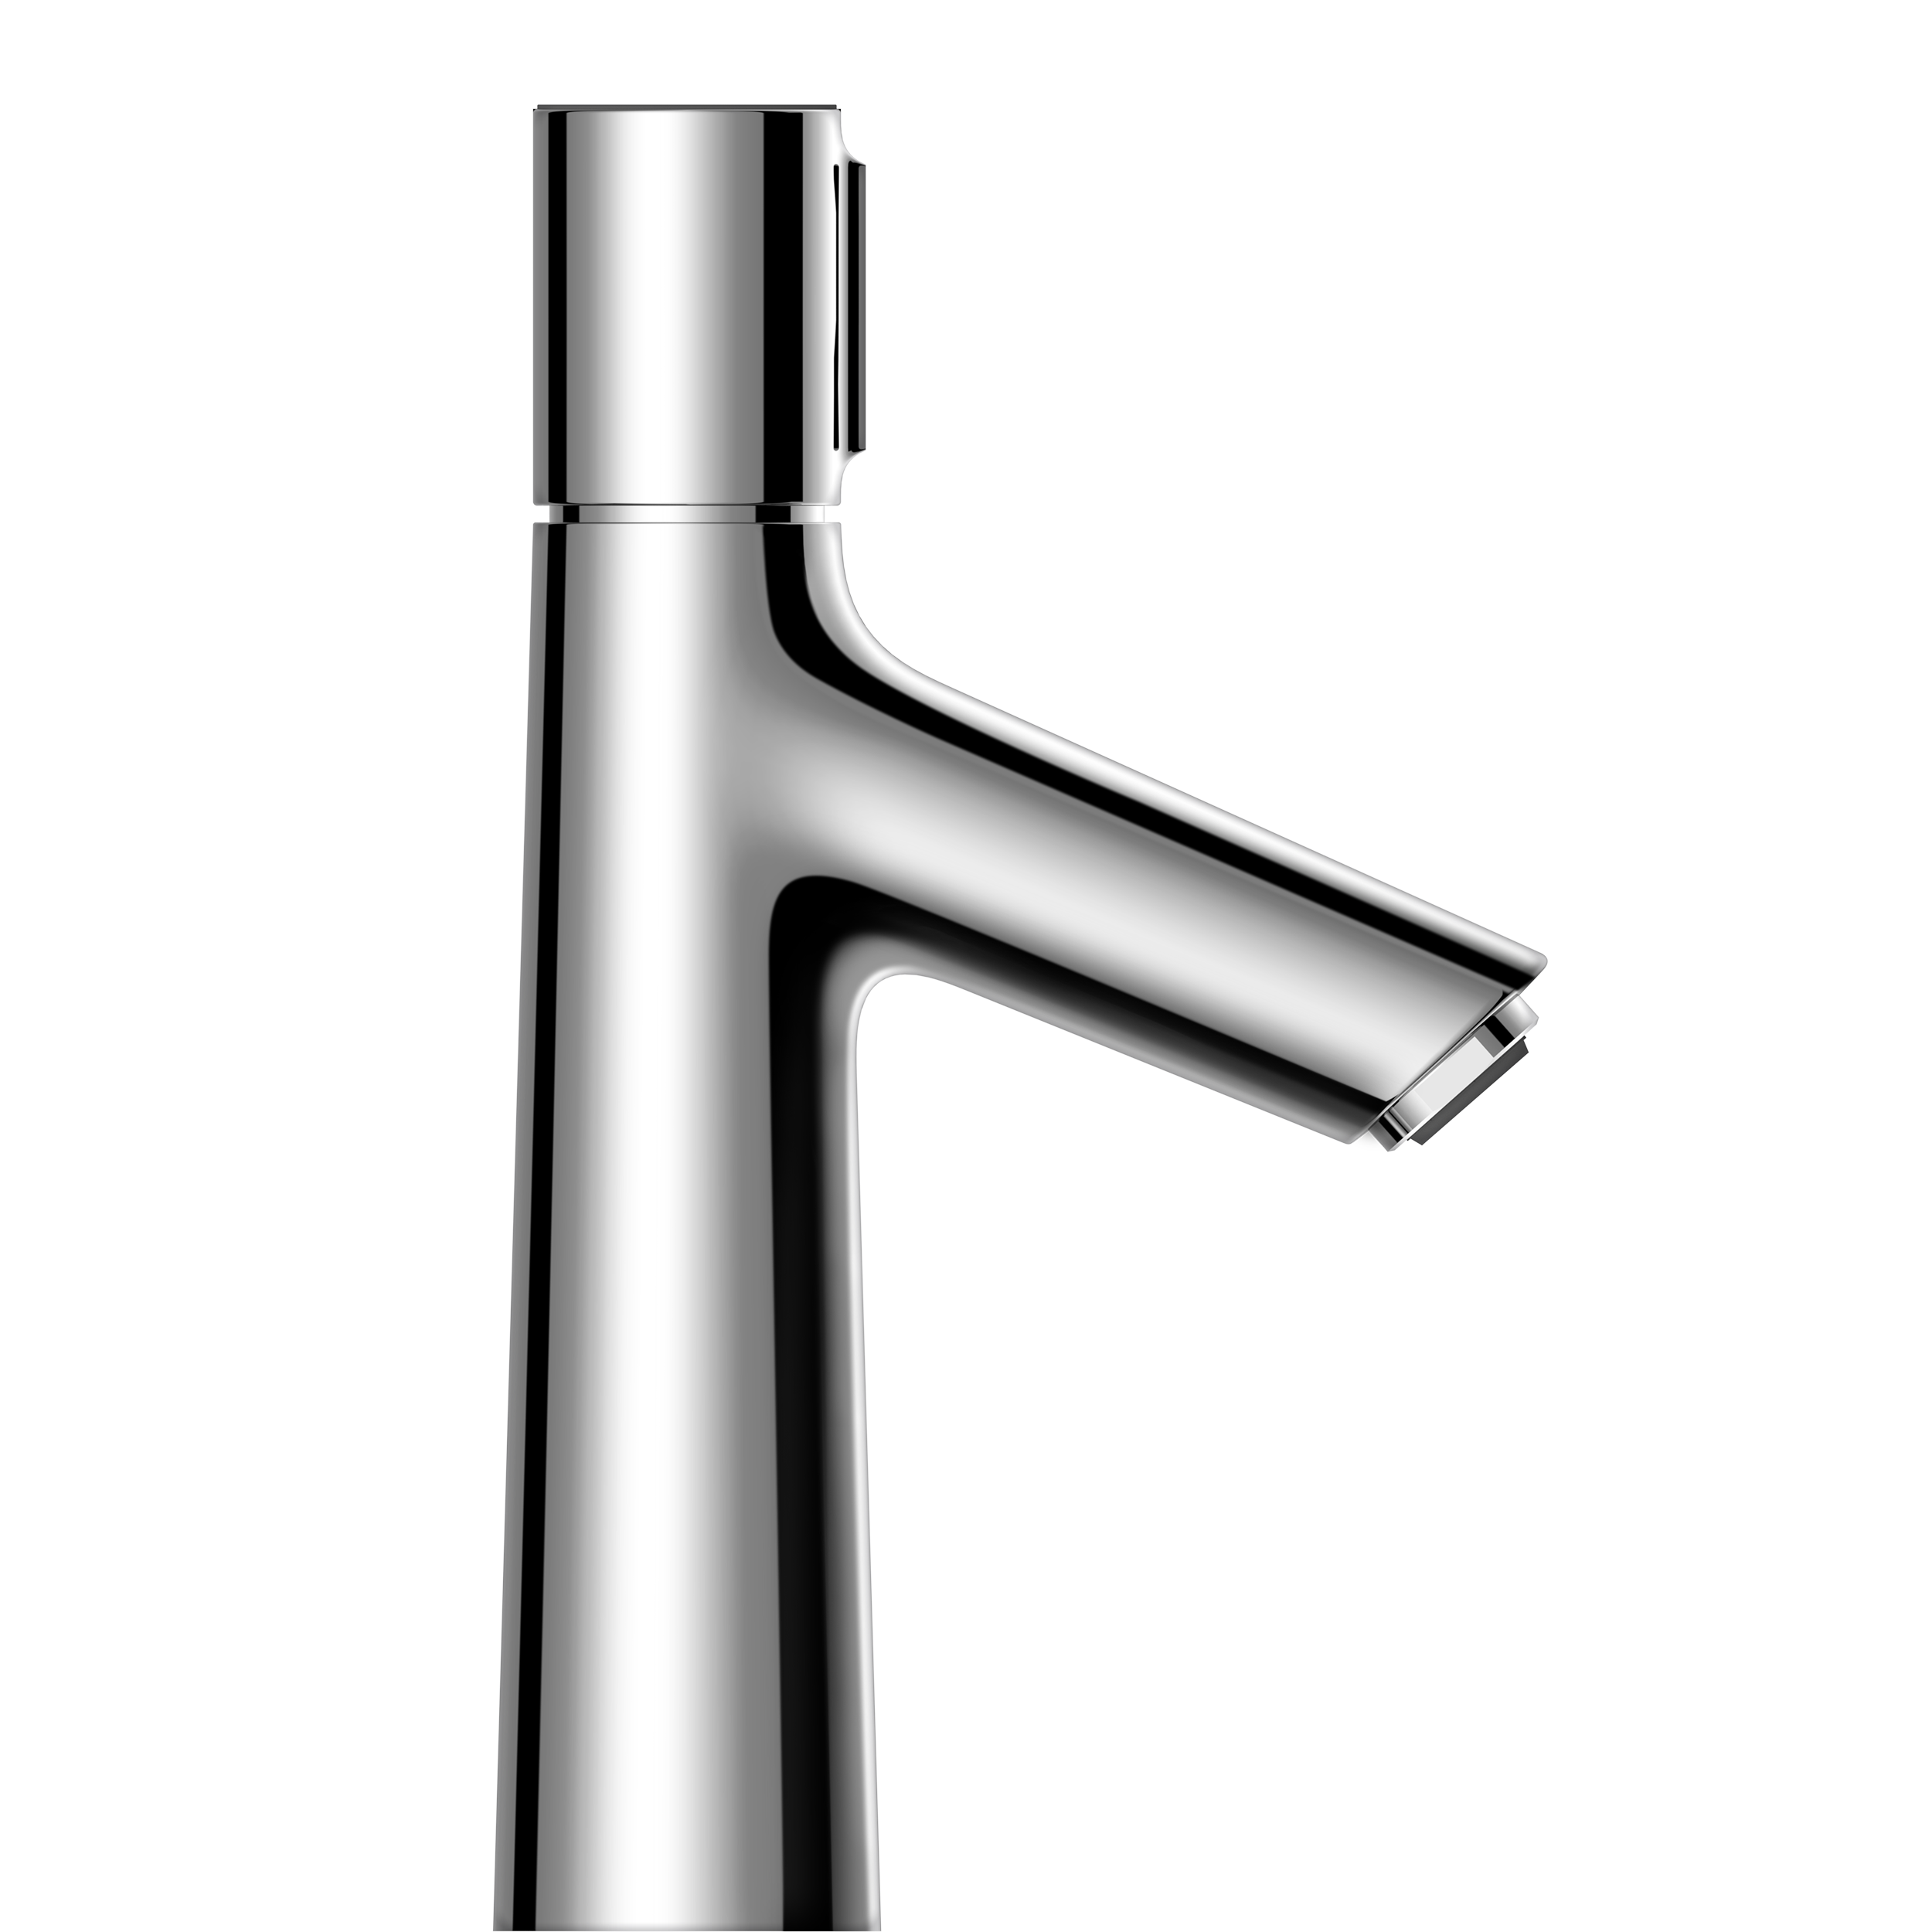 color limited steel number metro year spout stainless pin r ringsk pull warranty out hansgrohe faucet higharc kitchen article rea with